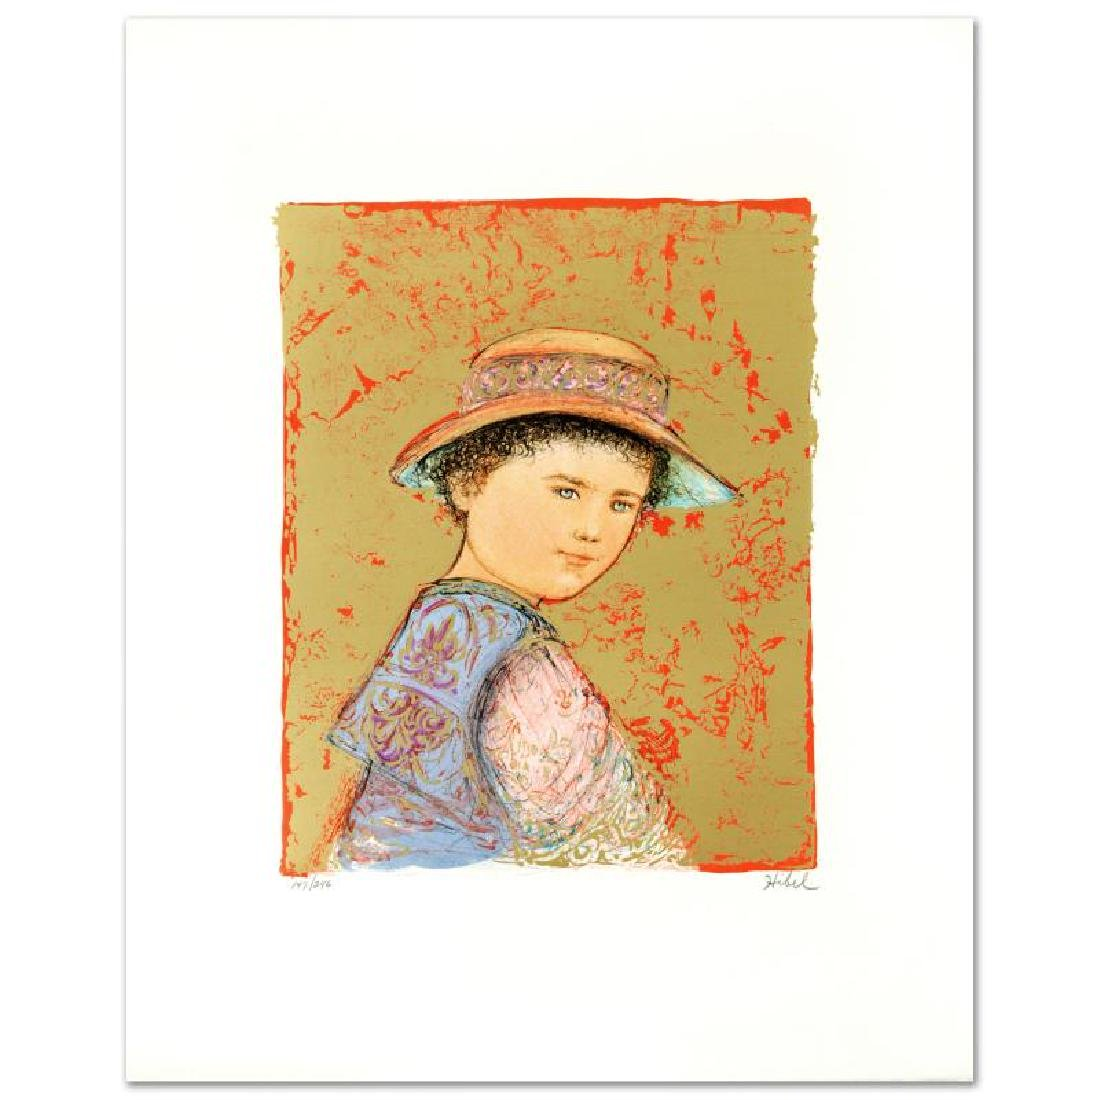 """Joel"" Limited Edition Lithograph by Edna Hibel"